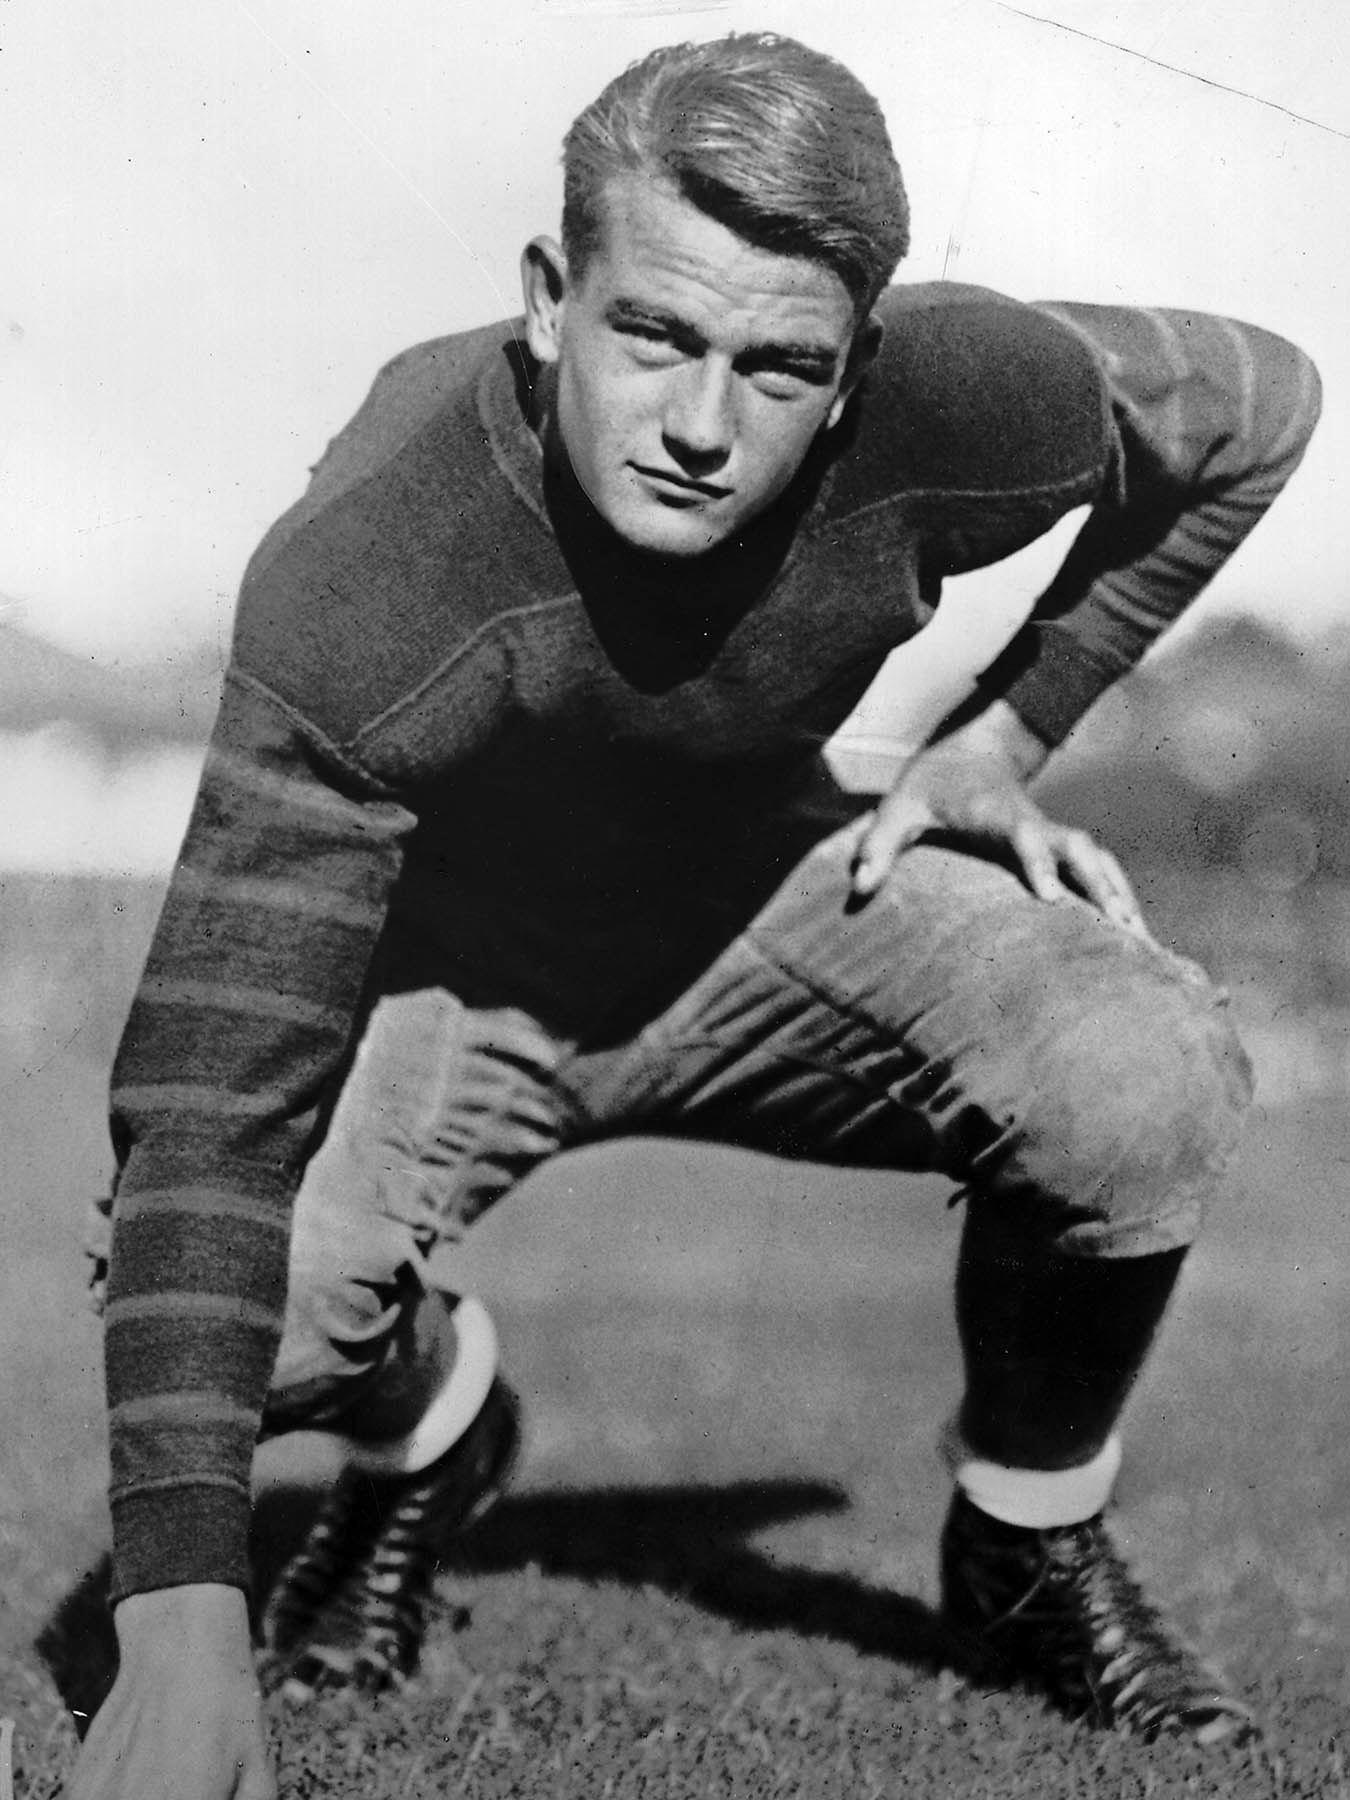 John Wayne appears in battle garb he wore as a member of the undefeated Trojan frosh. He played unde